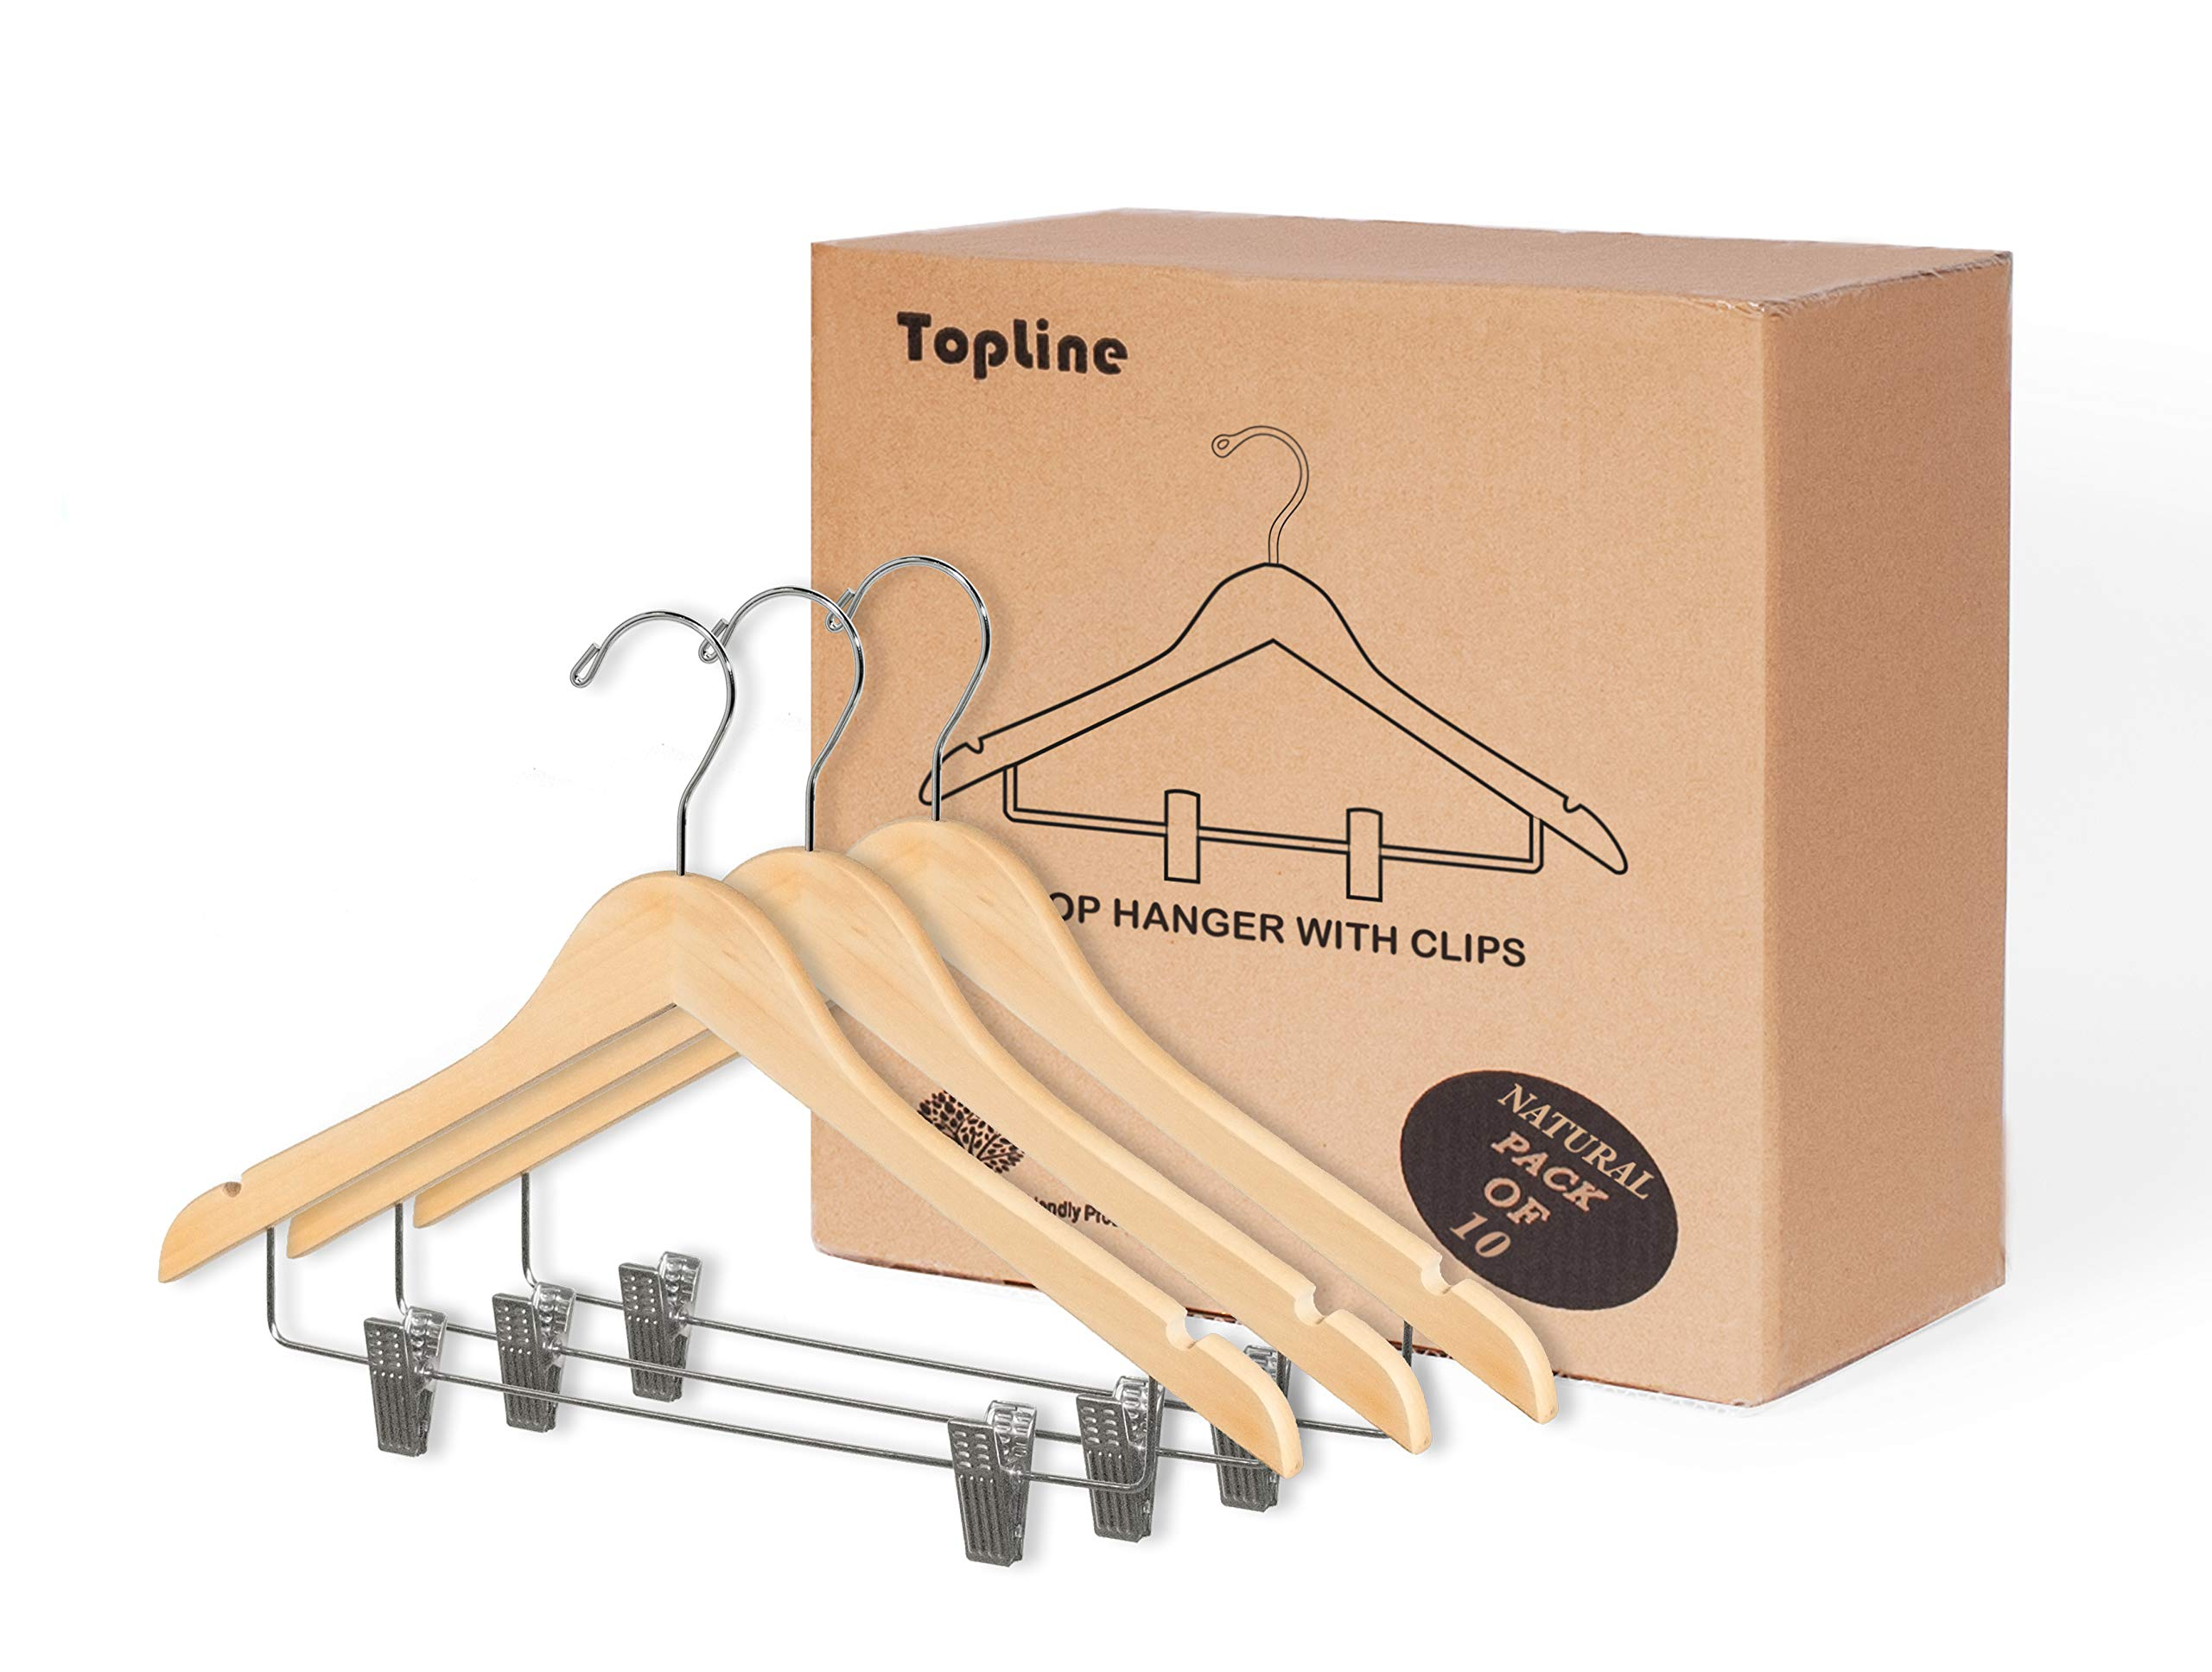 Topline Classic Wood Shirt Hangers with Clips - Natural Finish (10-Pack)